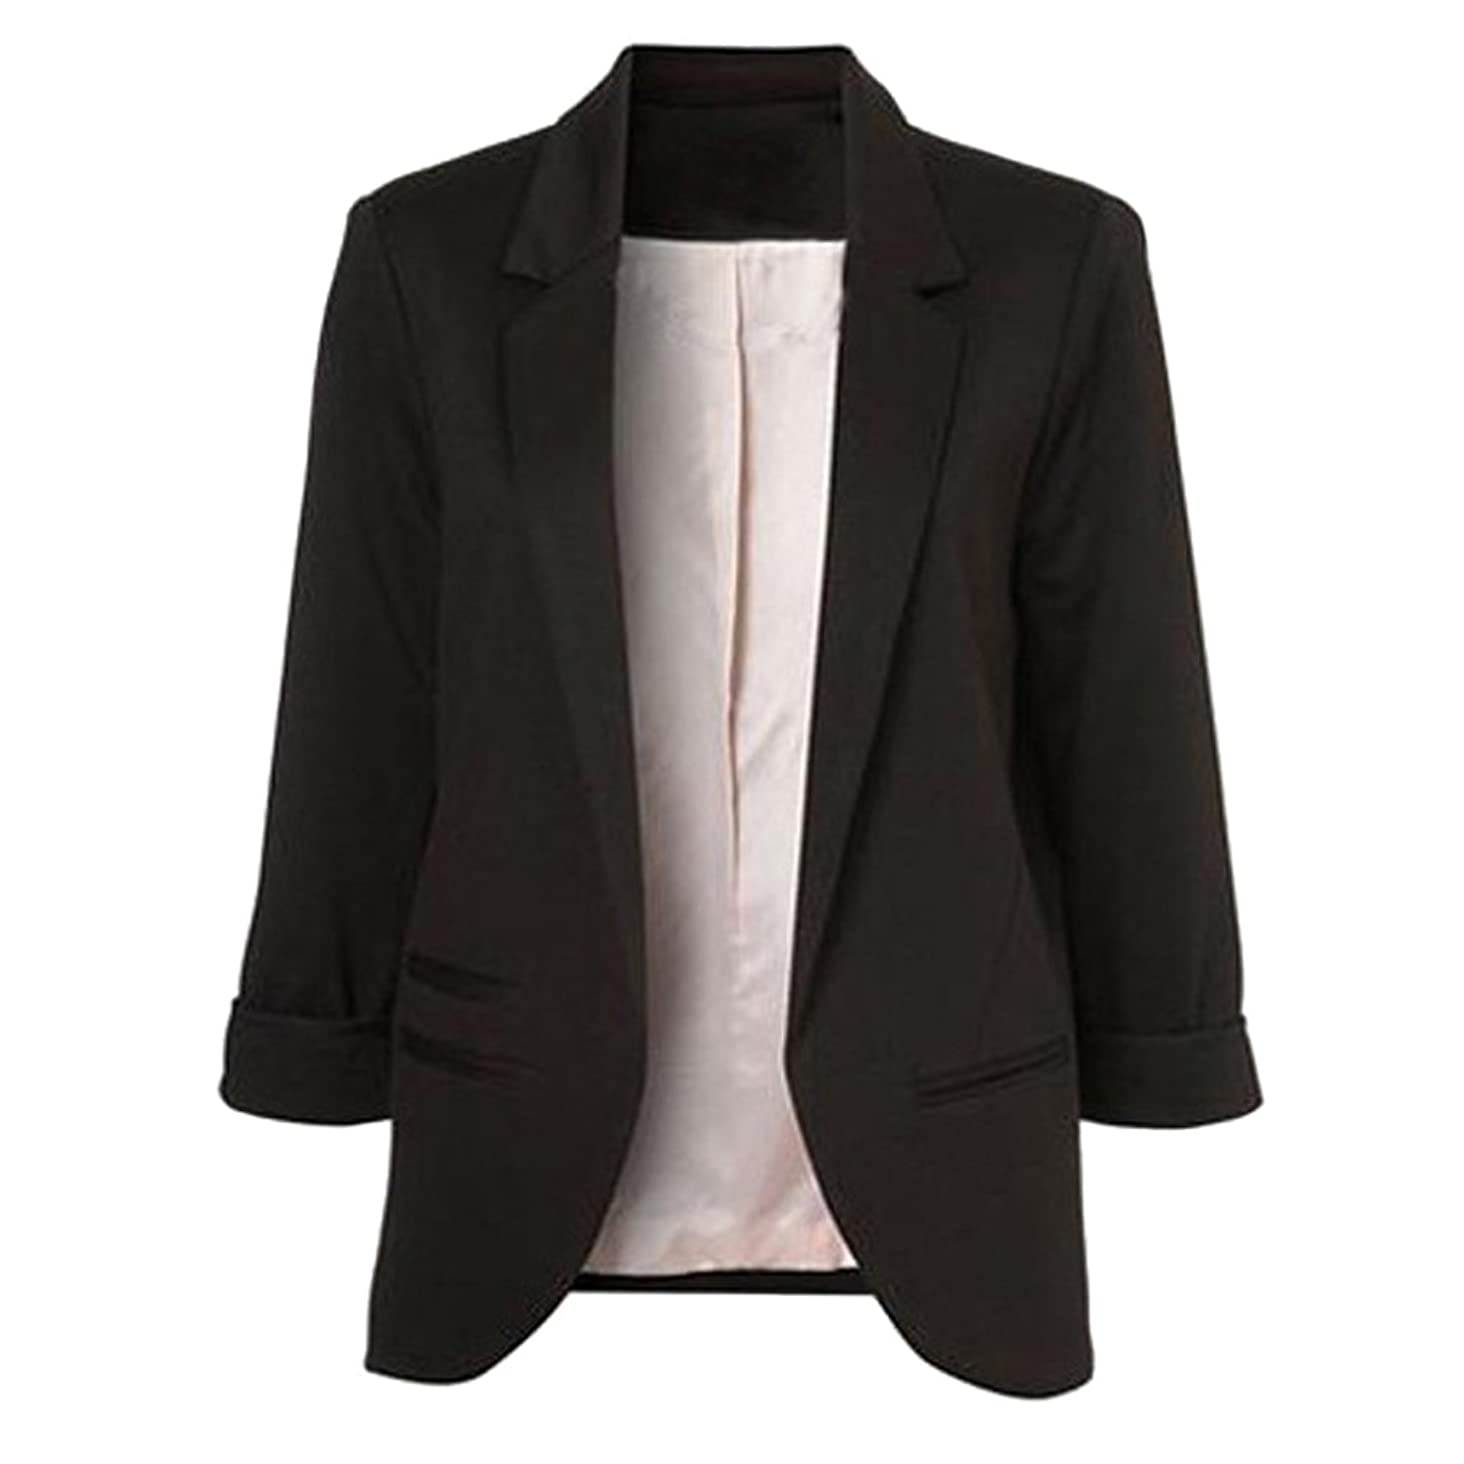 Jessica CC Women's 3/4 Sleeves Open Front Blazer Jacket Work Office Casual Blazer Suit with Pockets